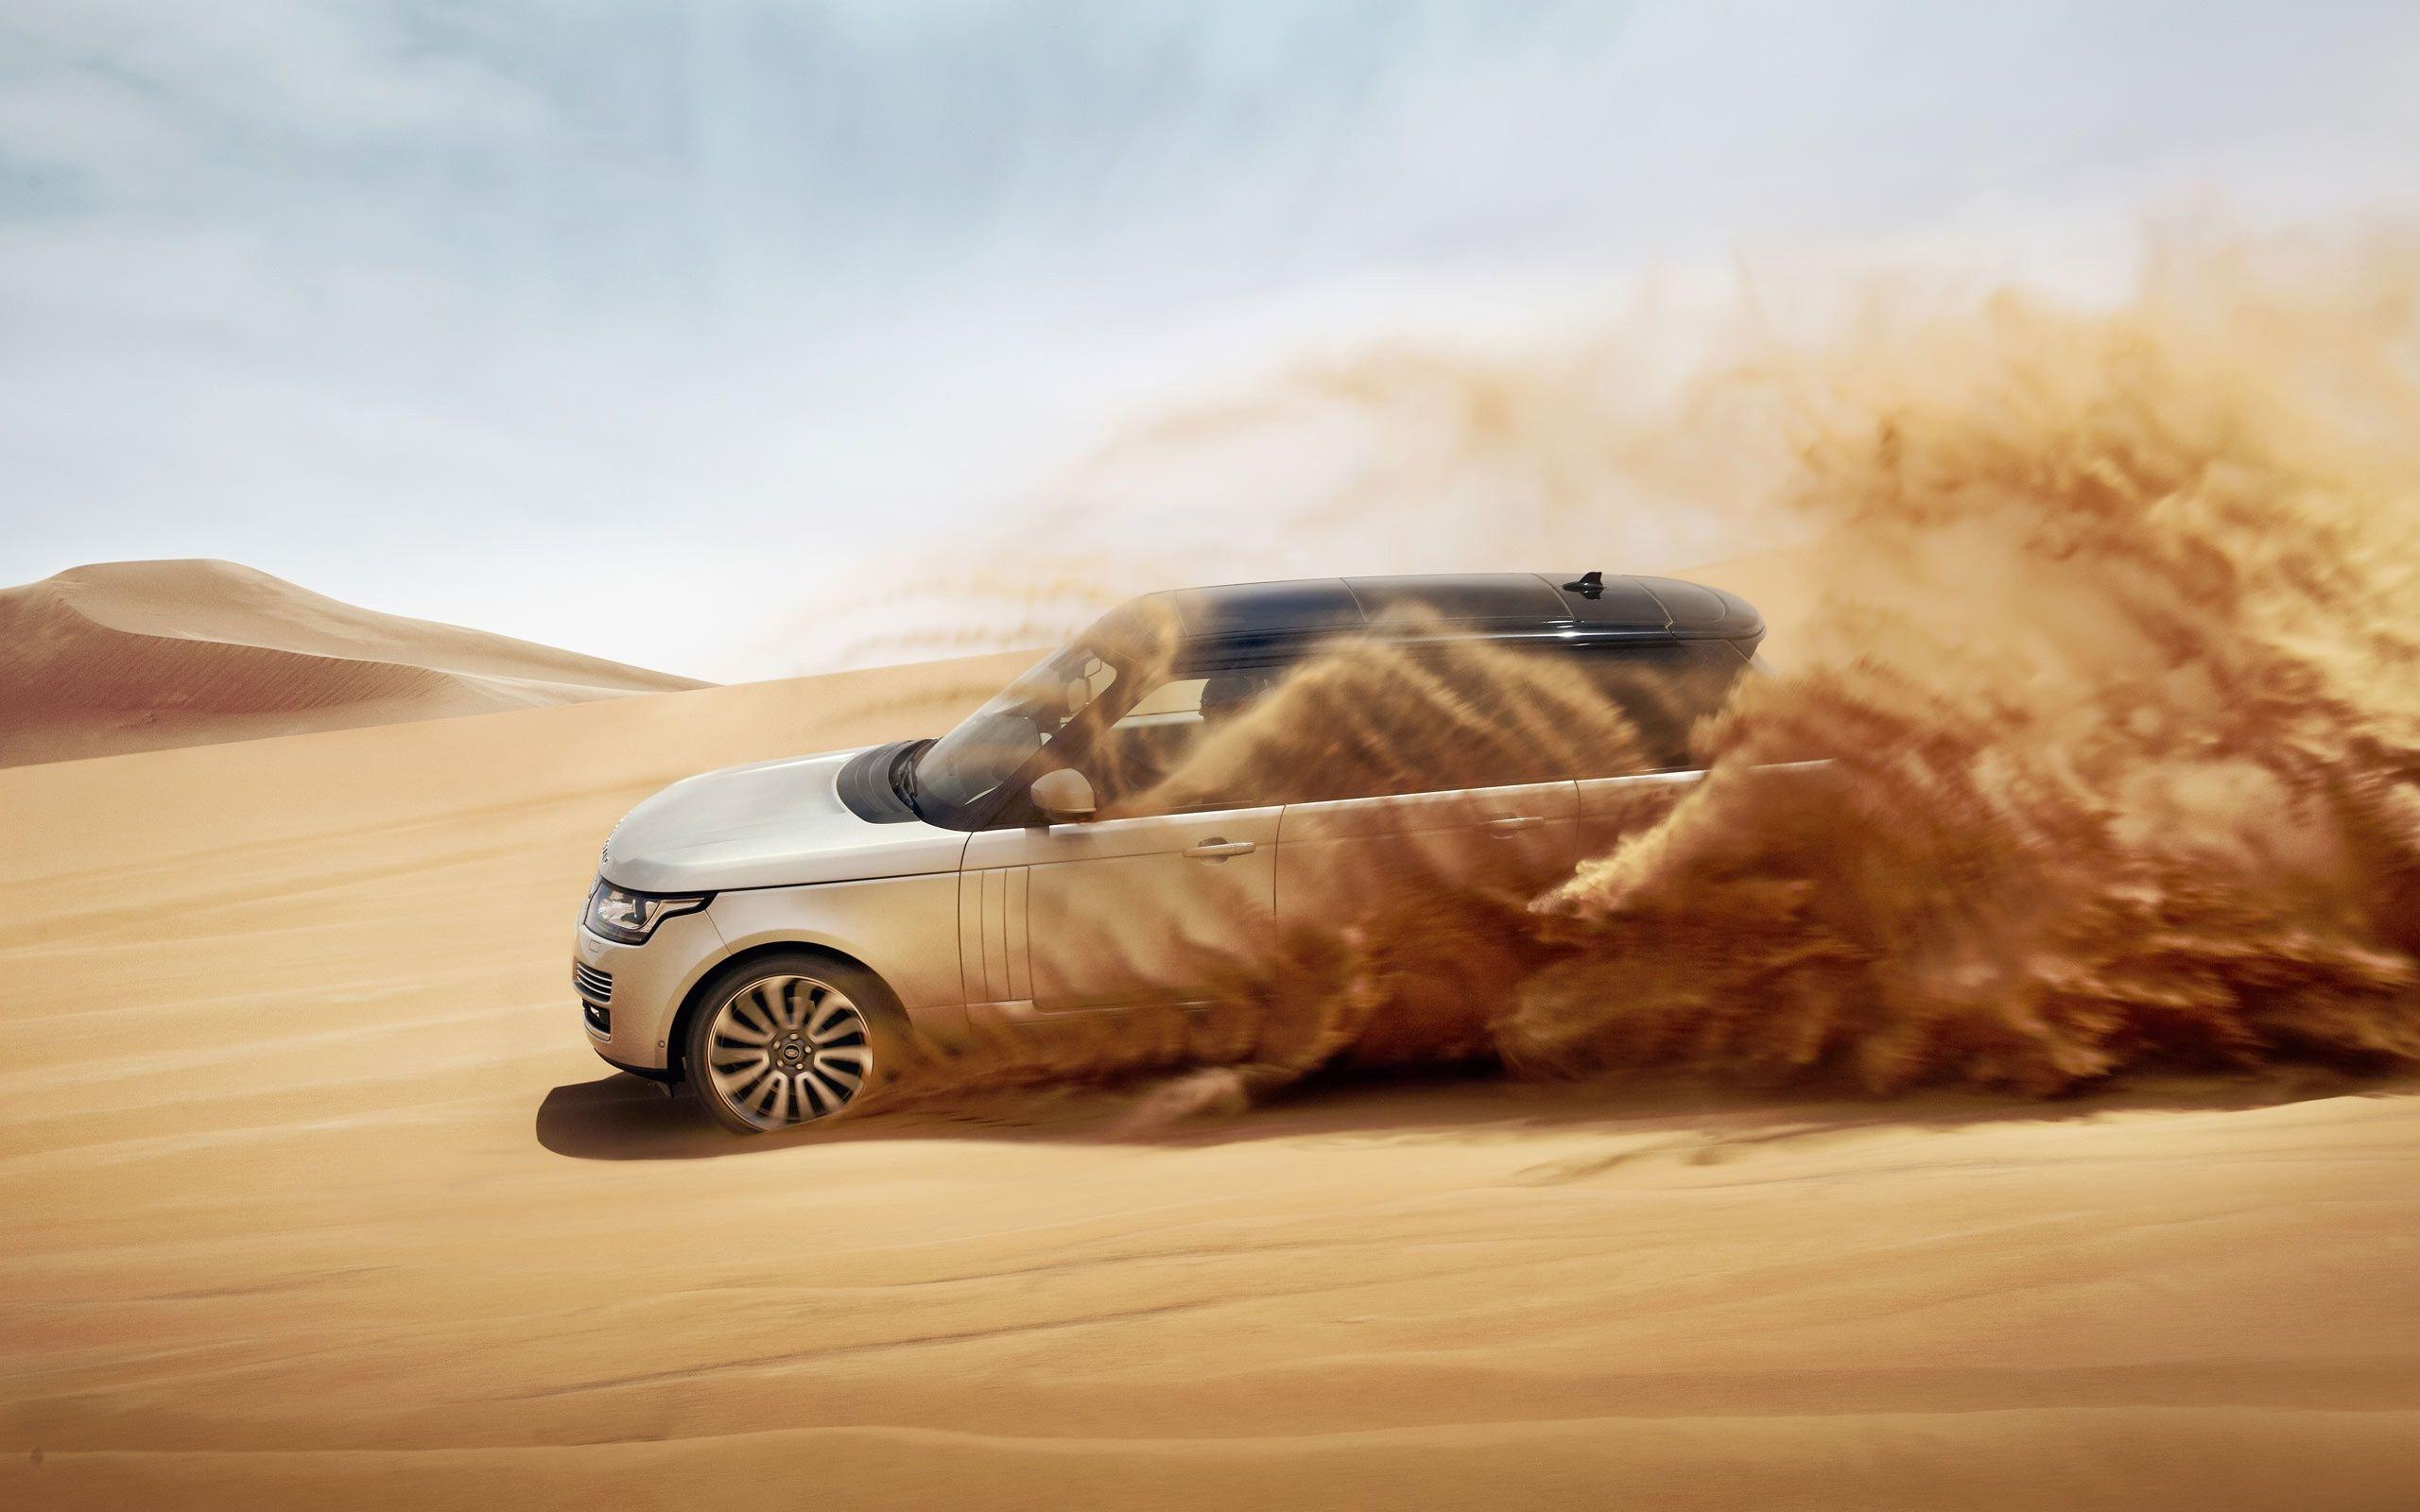 HD Range Rover Wallpapers & Range Rover Backgrounds Image For Download